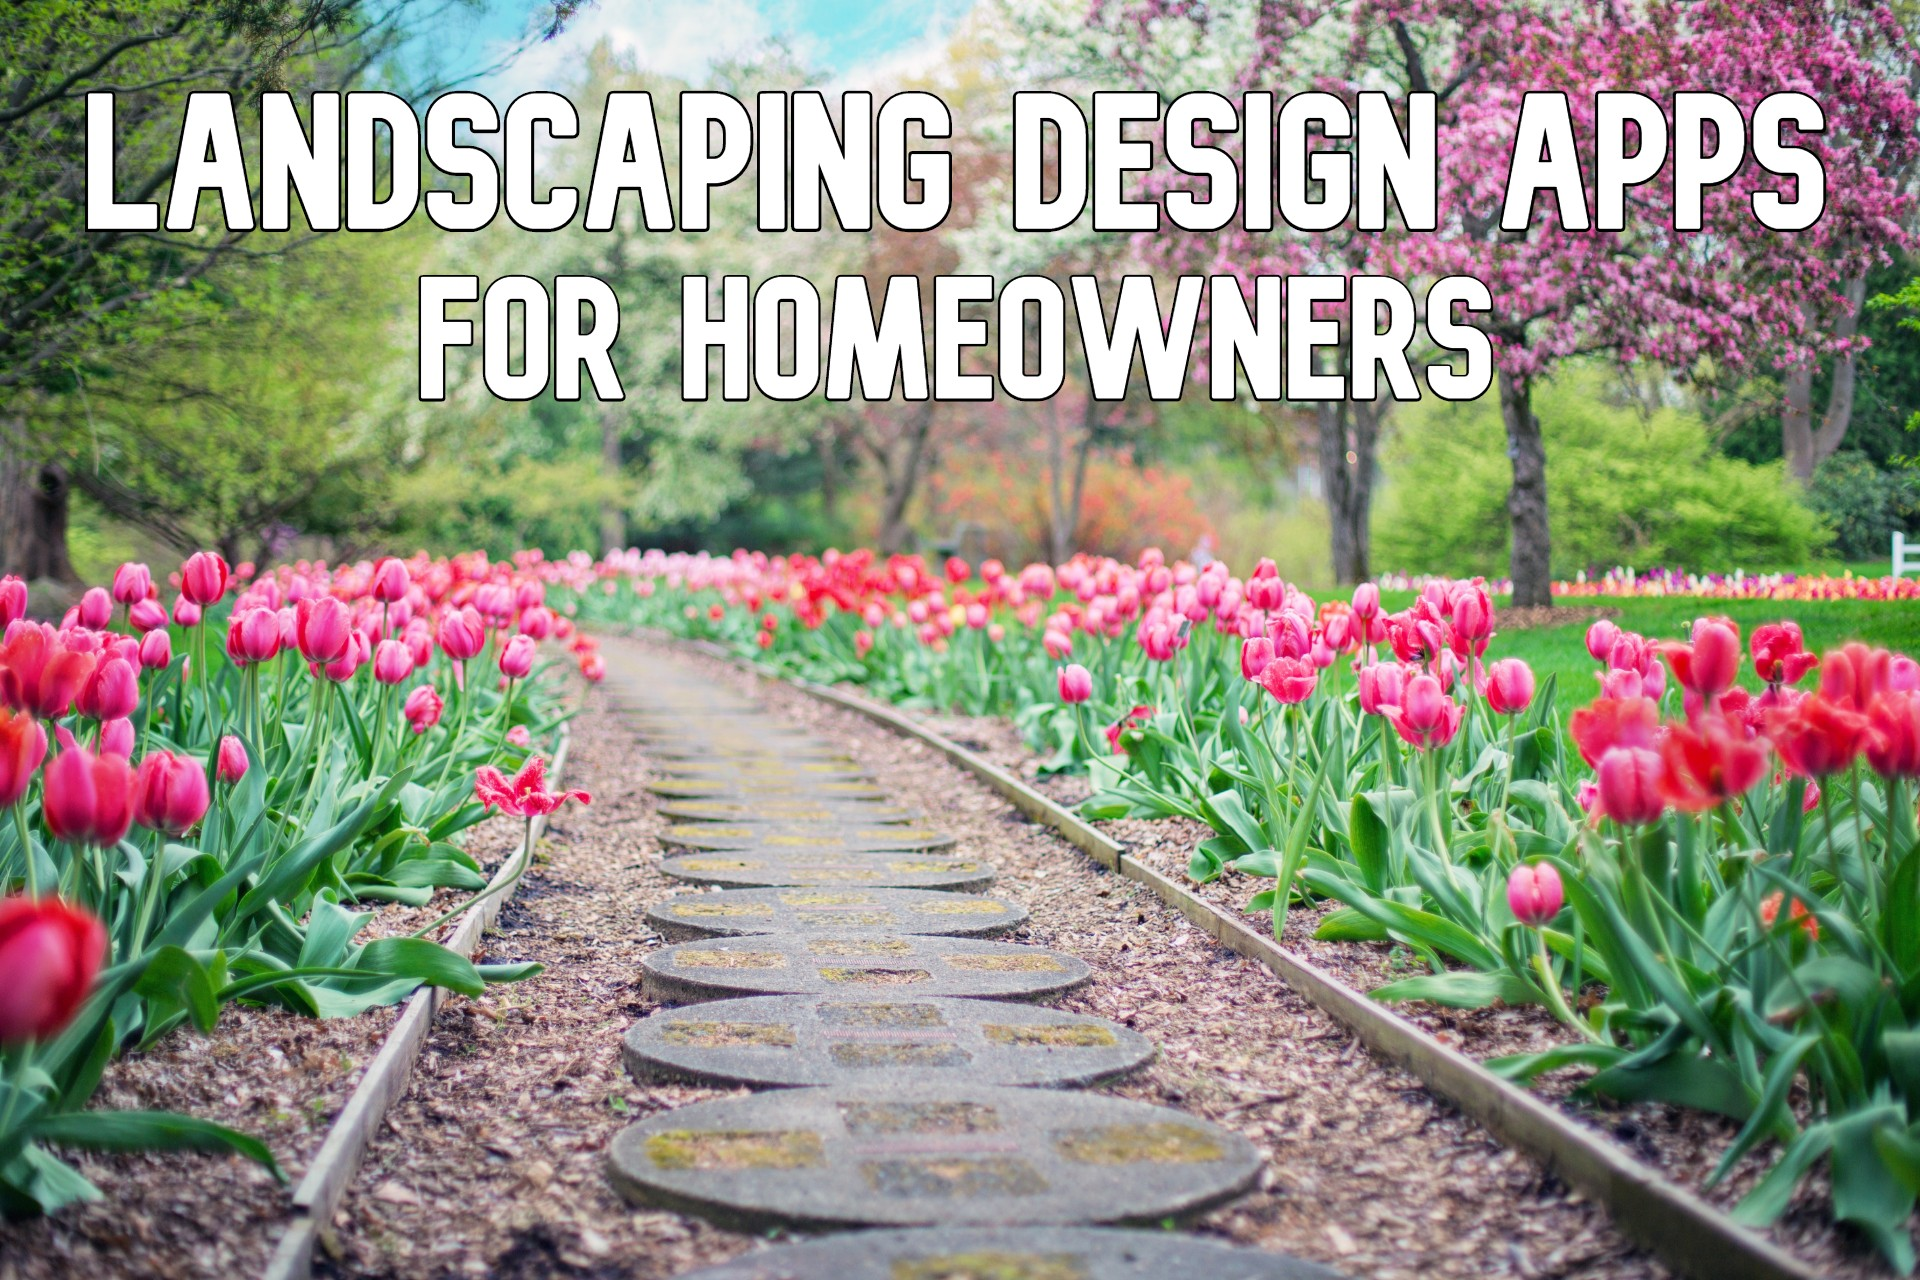 Landscaping Apps For Homeowners - Review